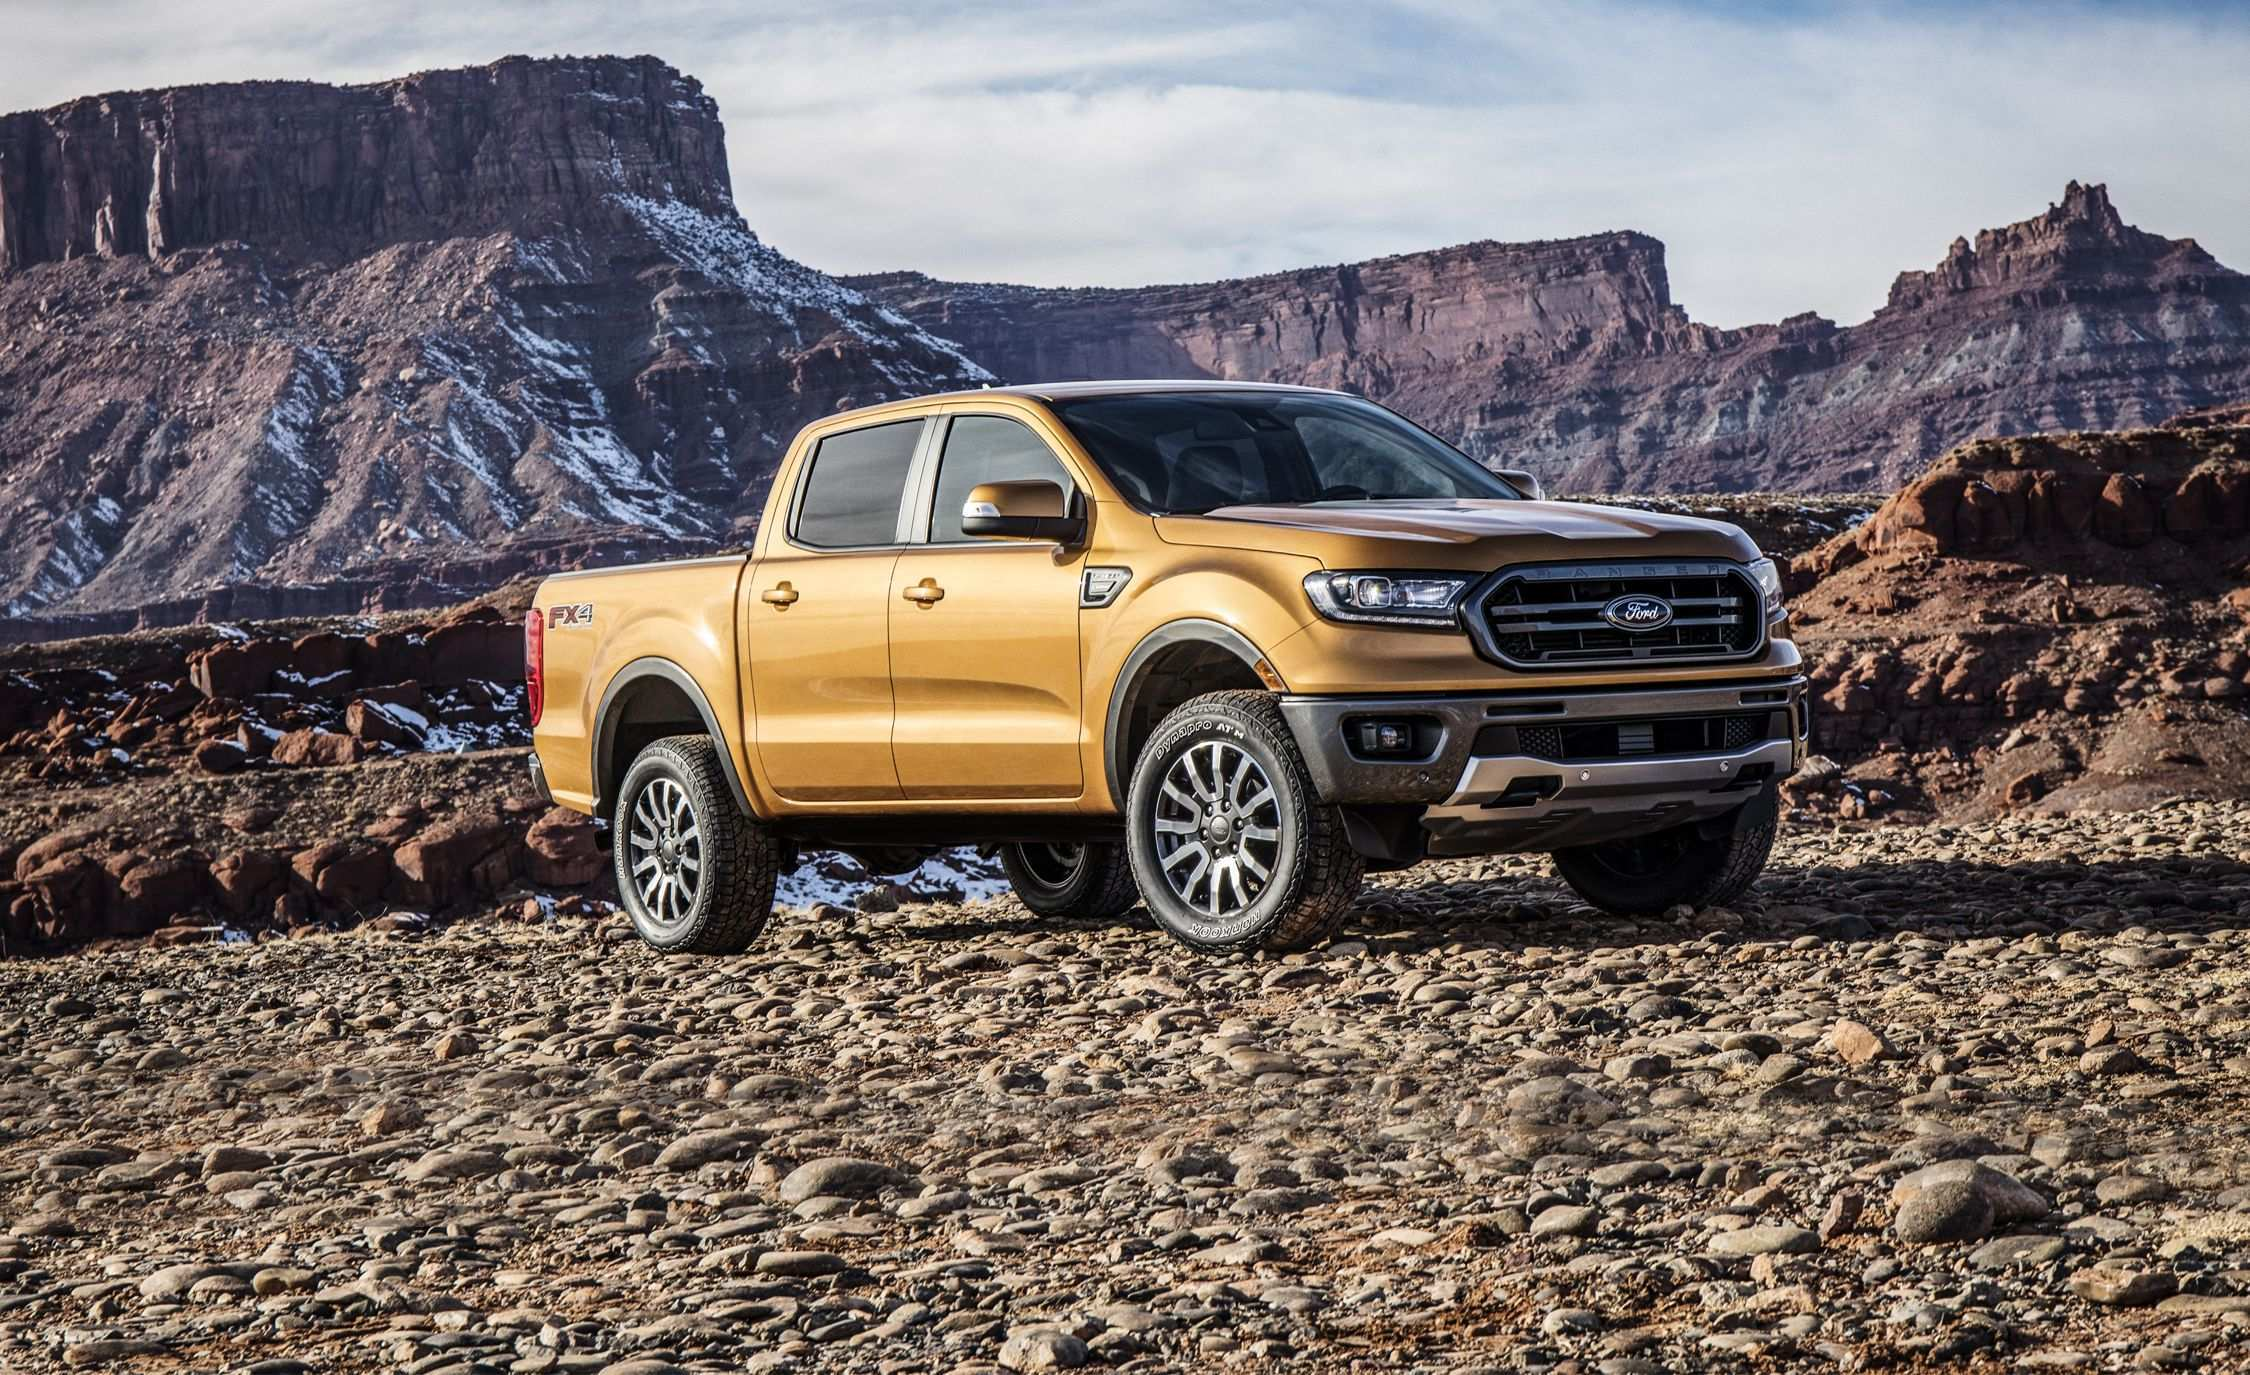 62 Best Review 2019 Ford Ranger Youtube Exterior with 2019 Ford Ranger Youtube